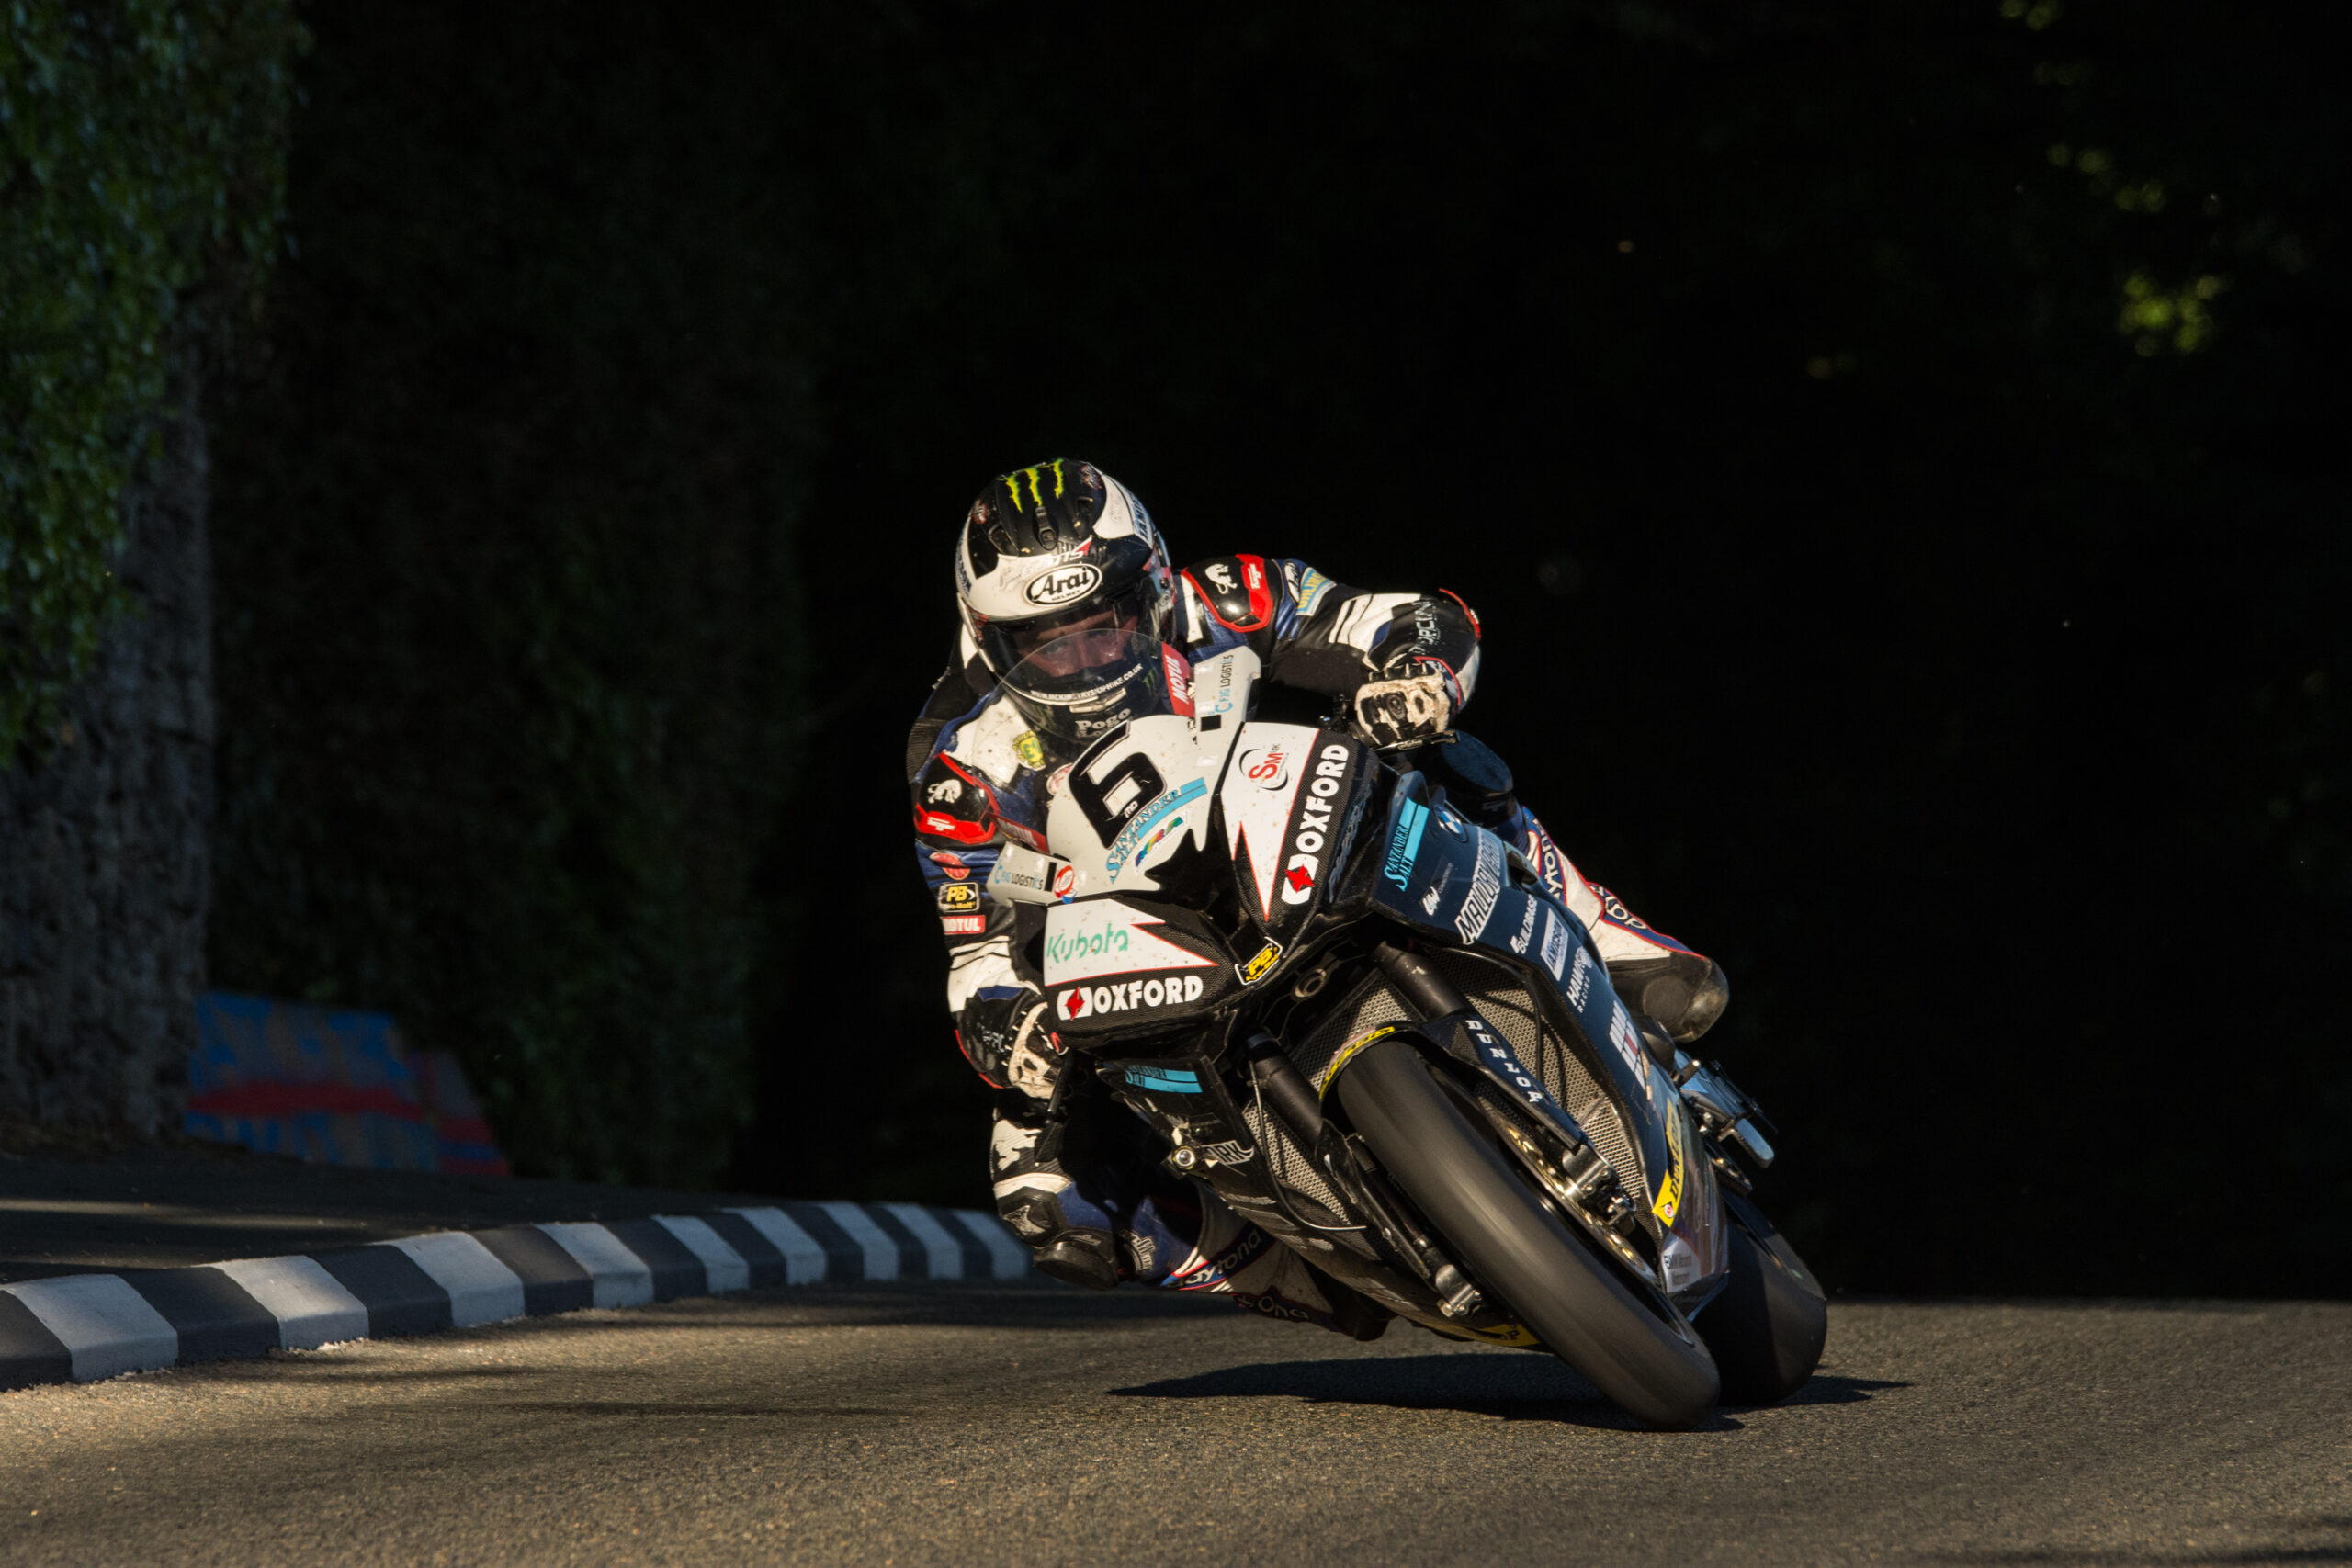 Michael Dunlop Confirmed For Gold Cup Competition